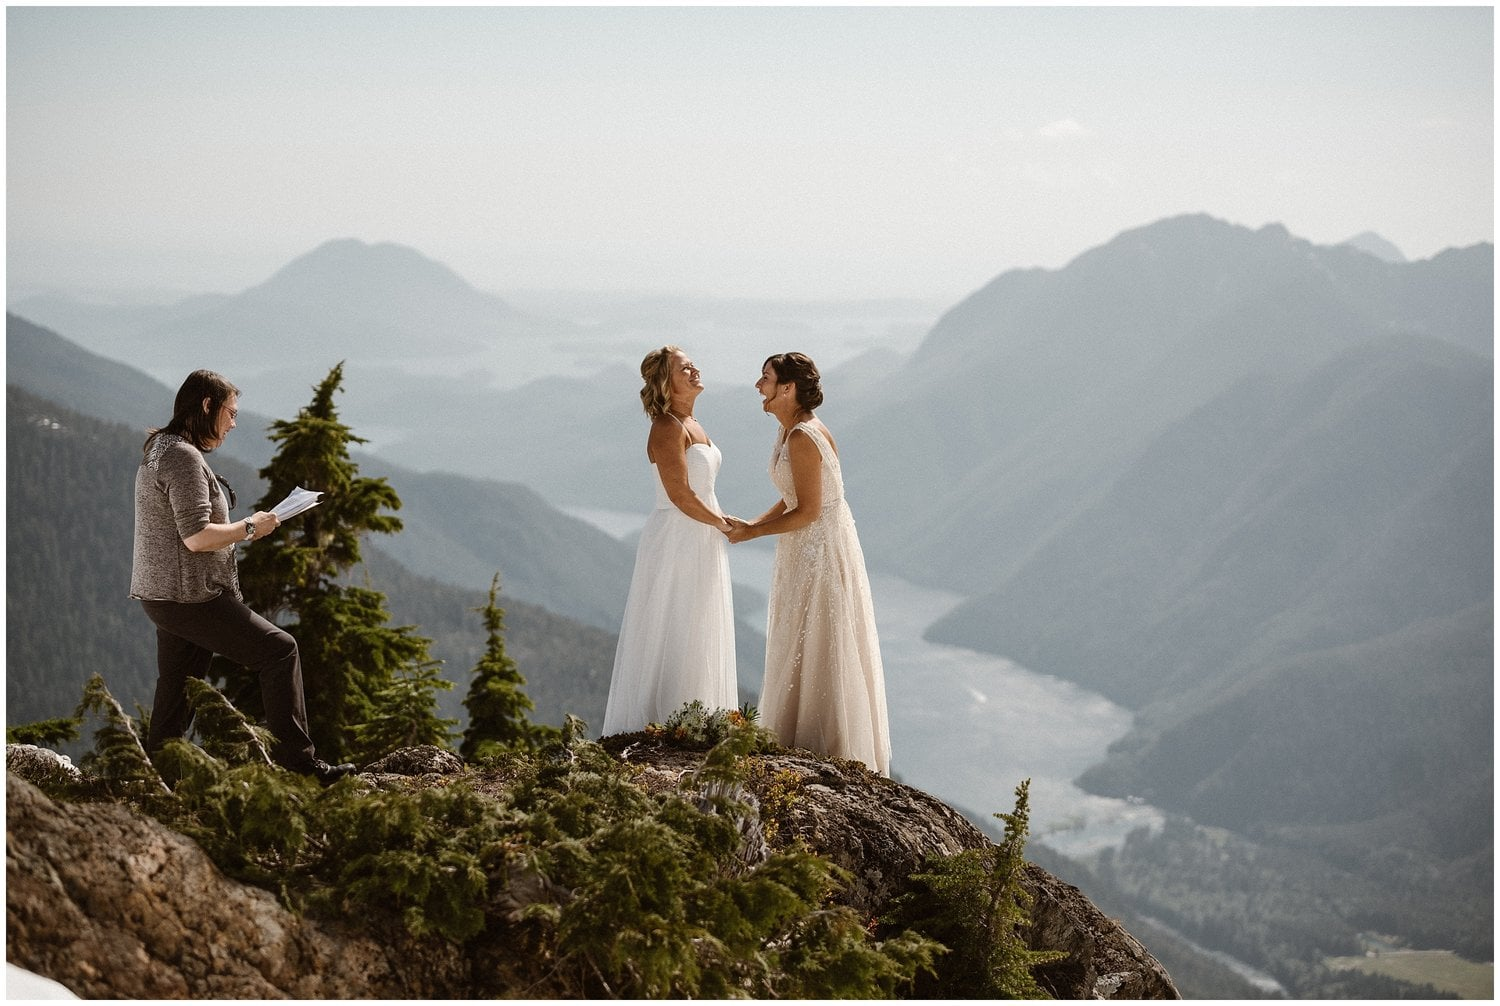 Two brides laugh while holding hands during their elopement ceremony.